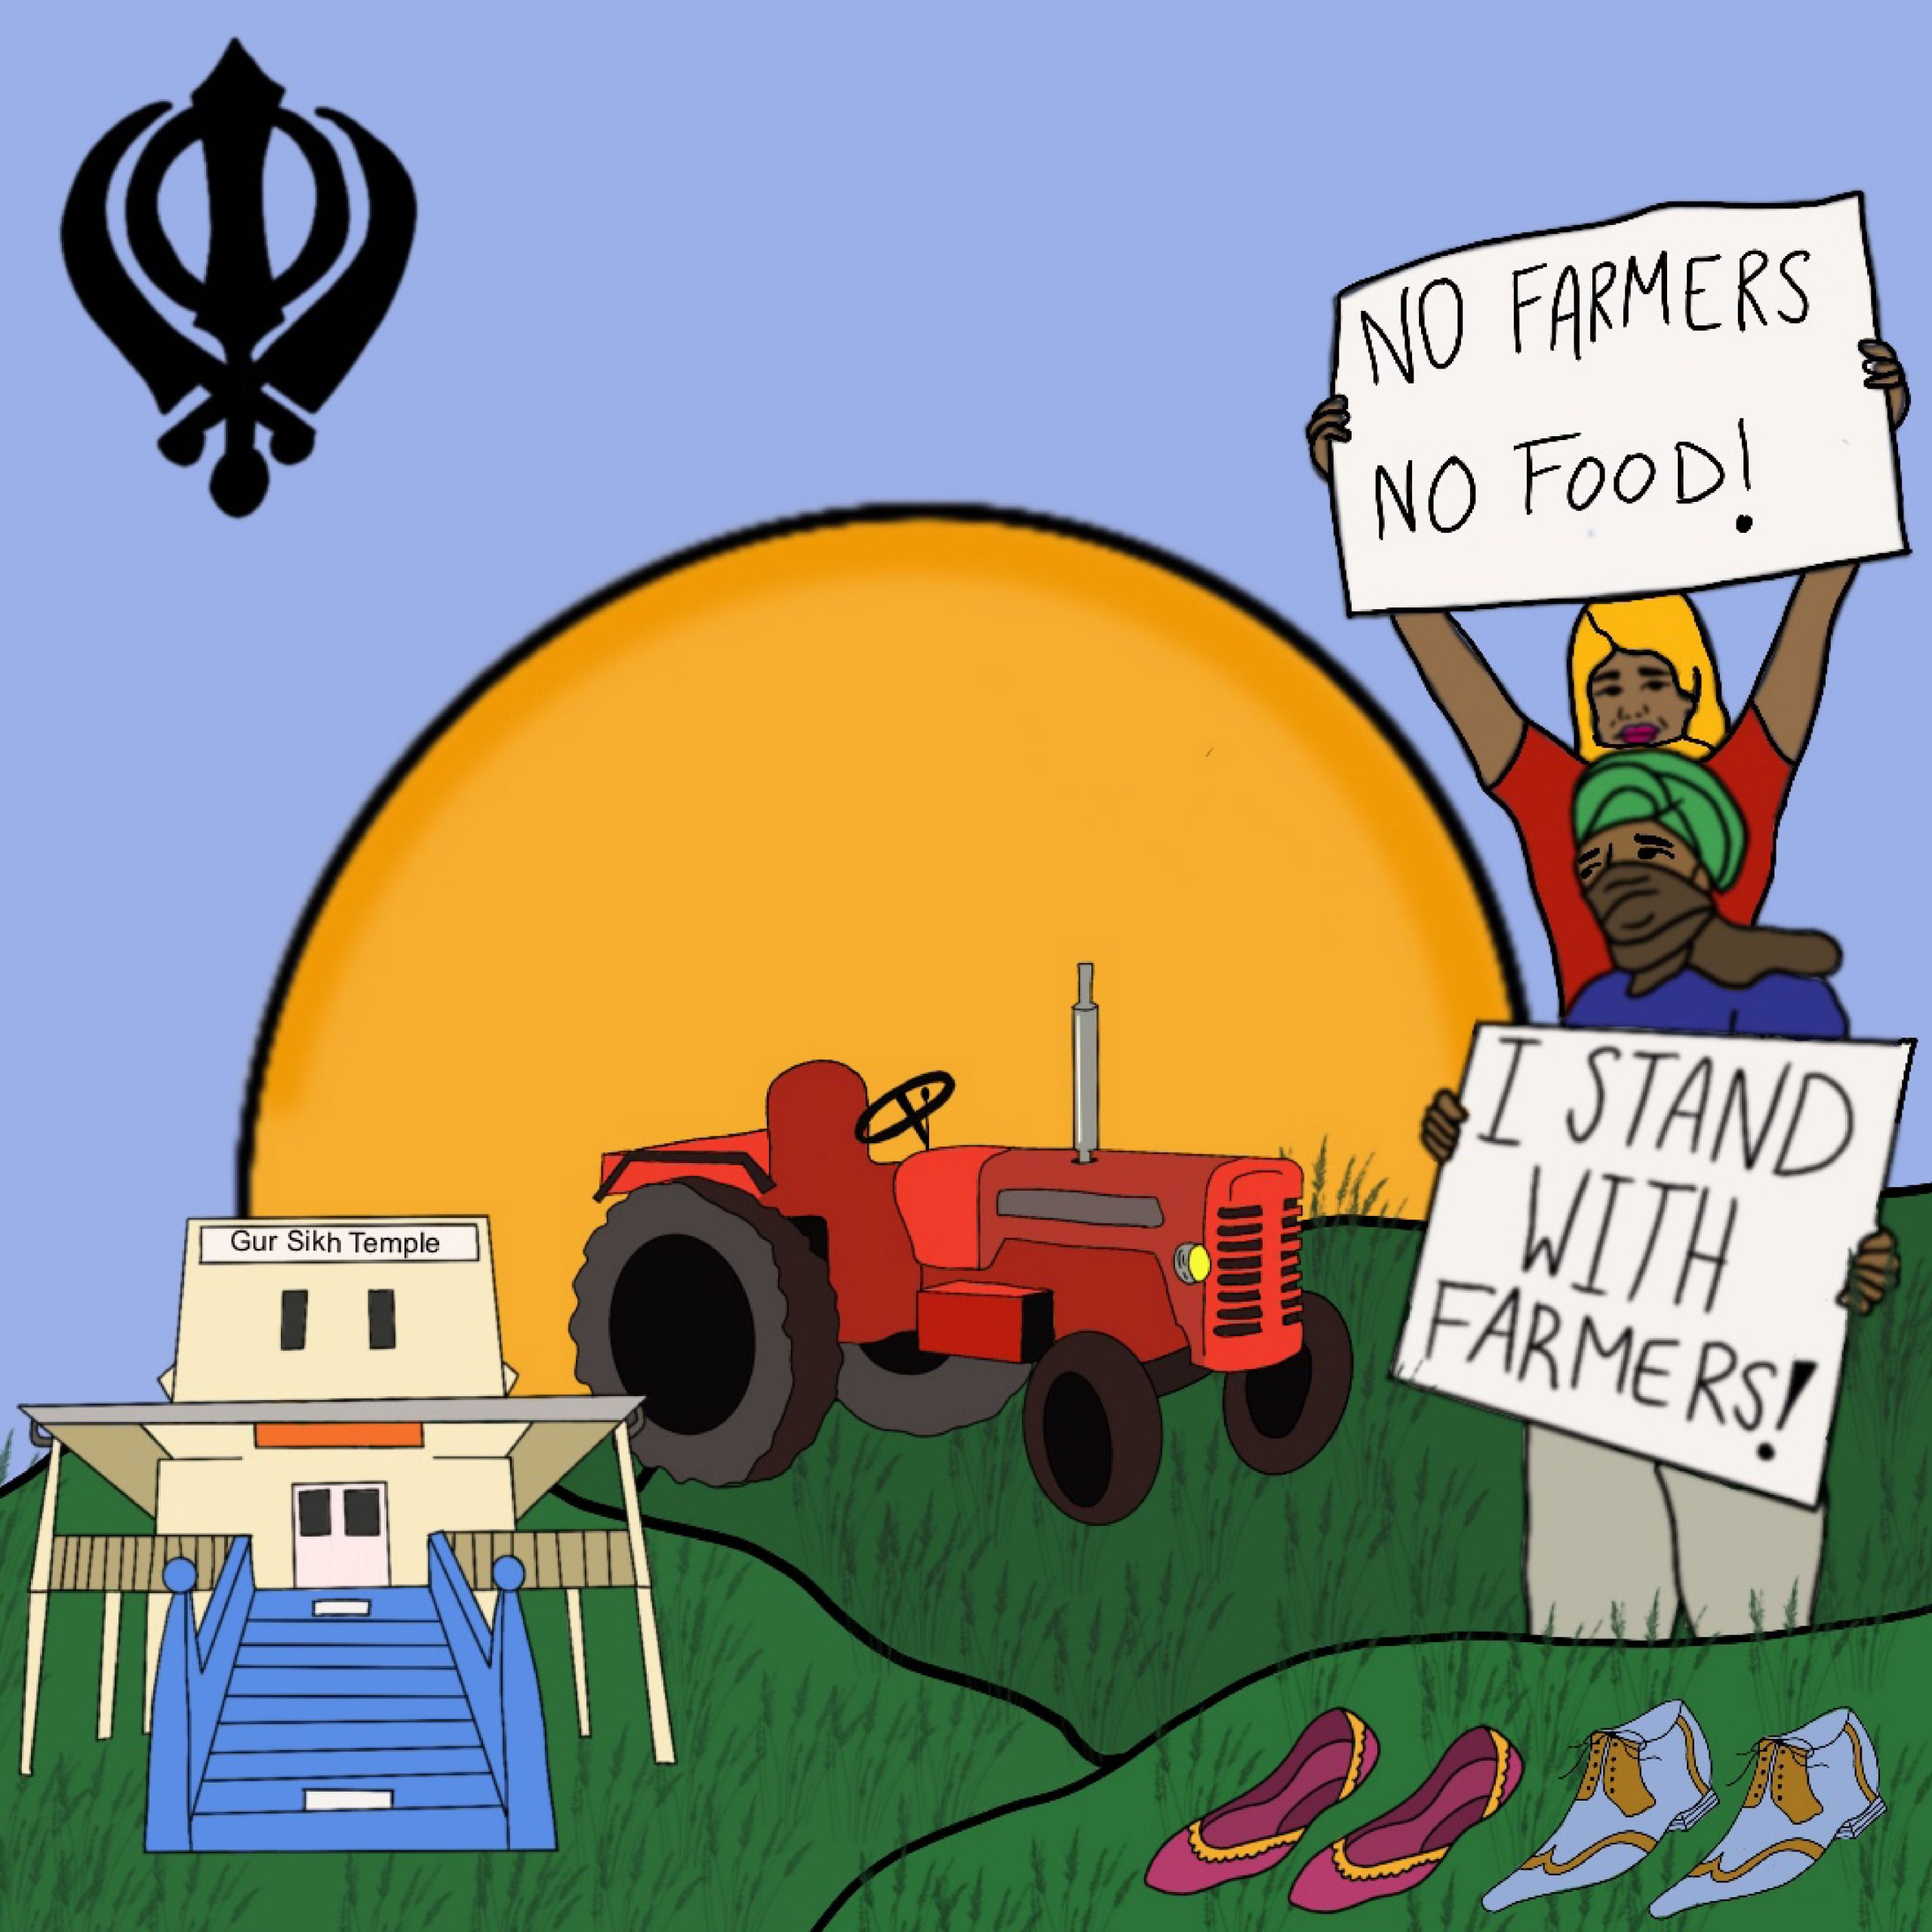 Illustration of protestors supporting farmers, Gur Sikh Temple, and a large sun over rolling hills